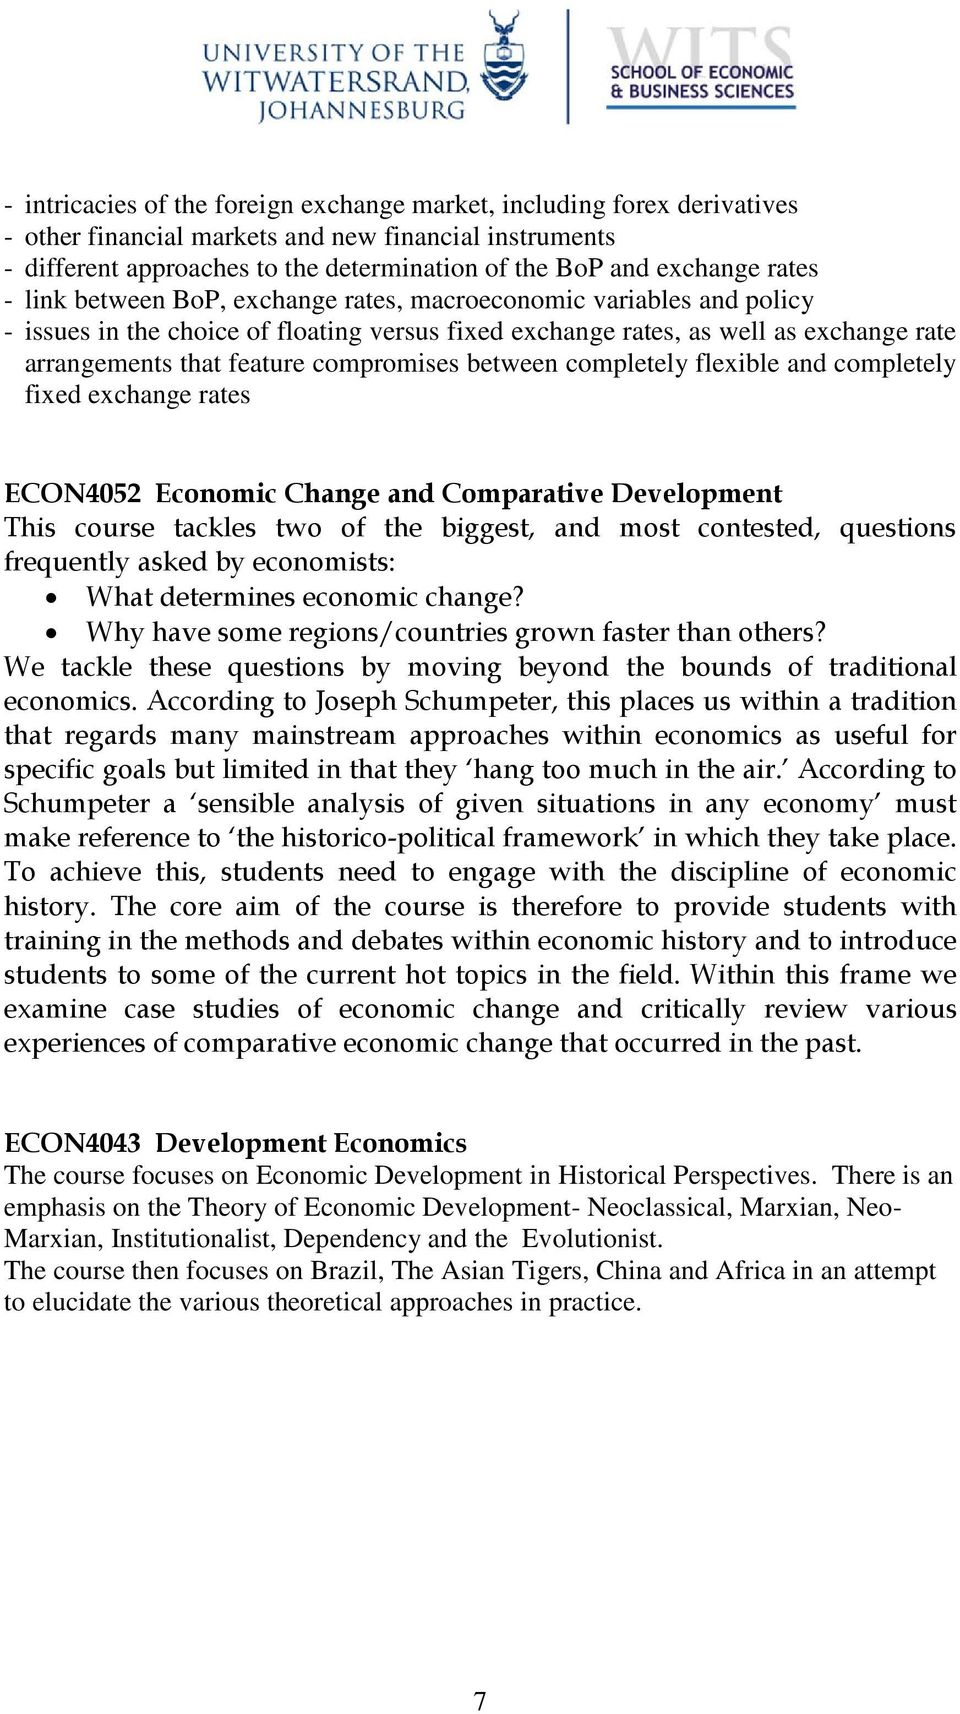 Online Writing: Term paper about economics FREE Bibliography!